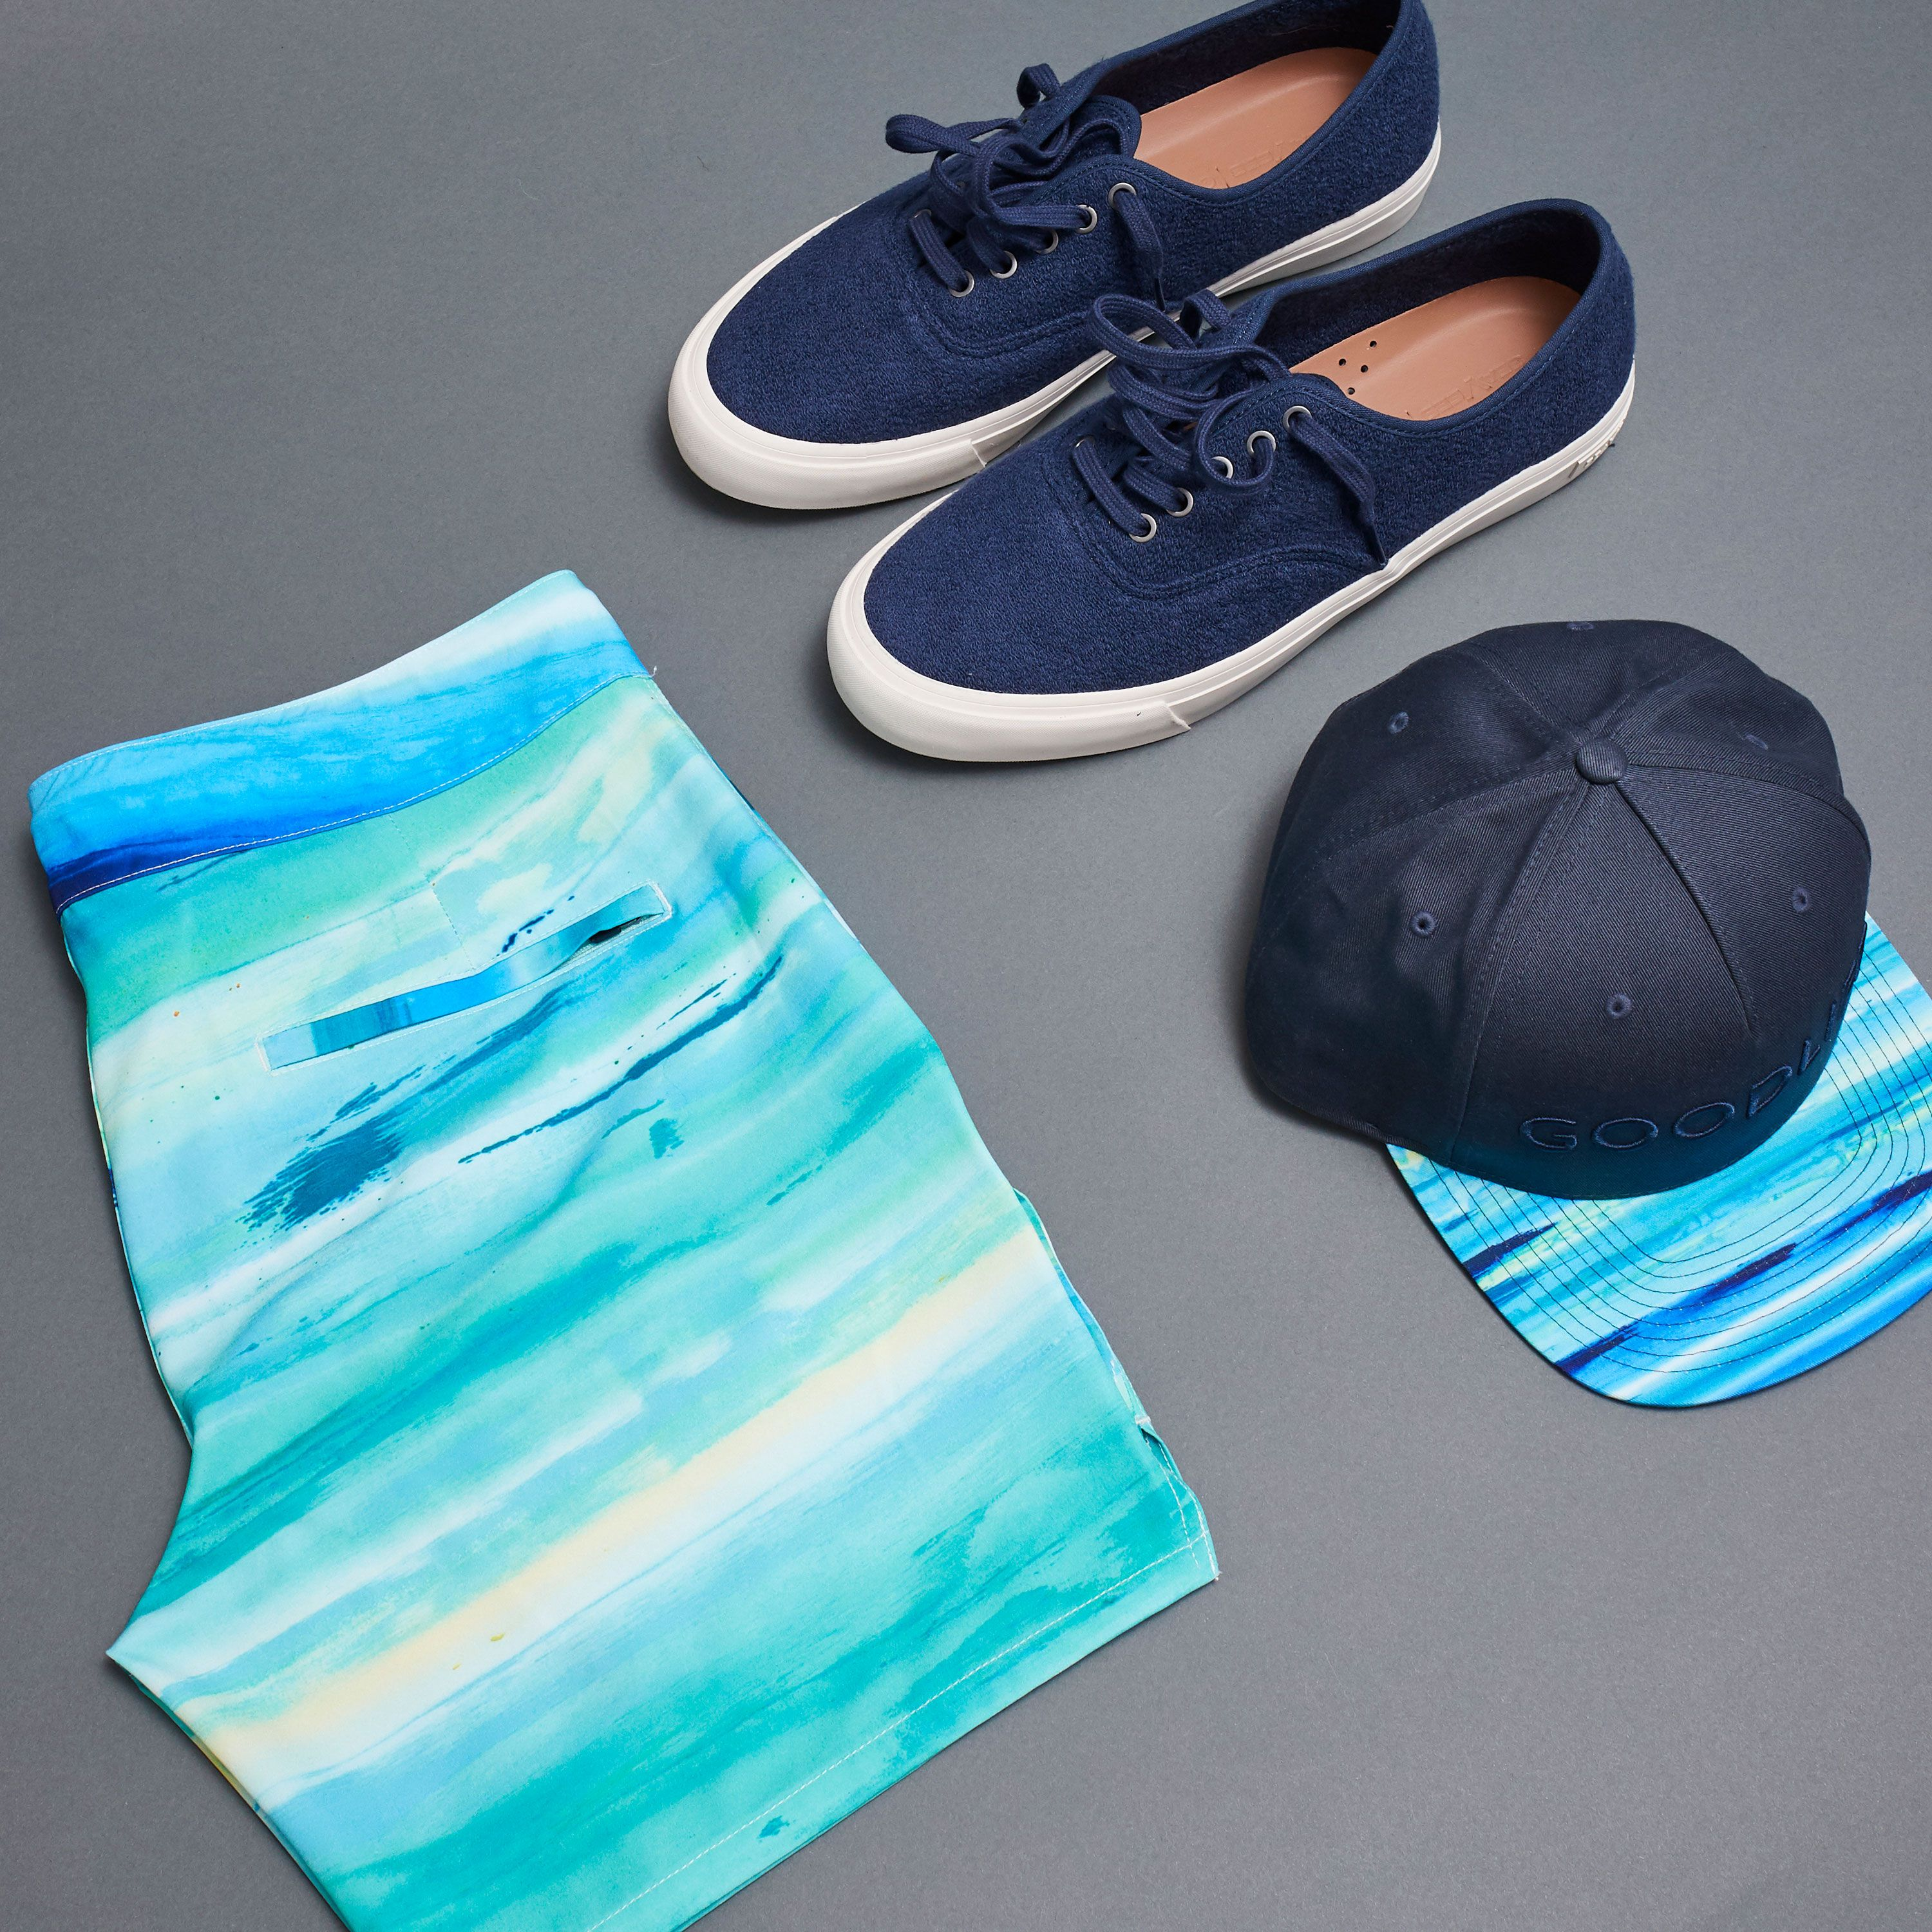 Goodlife's Latest Collabs Are Making Me Long for Summer